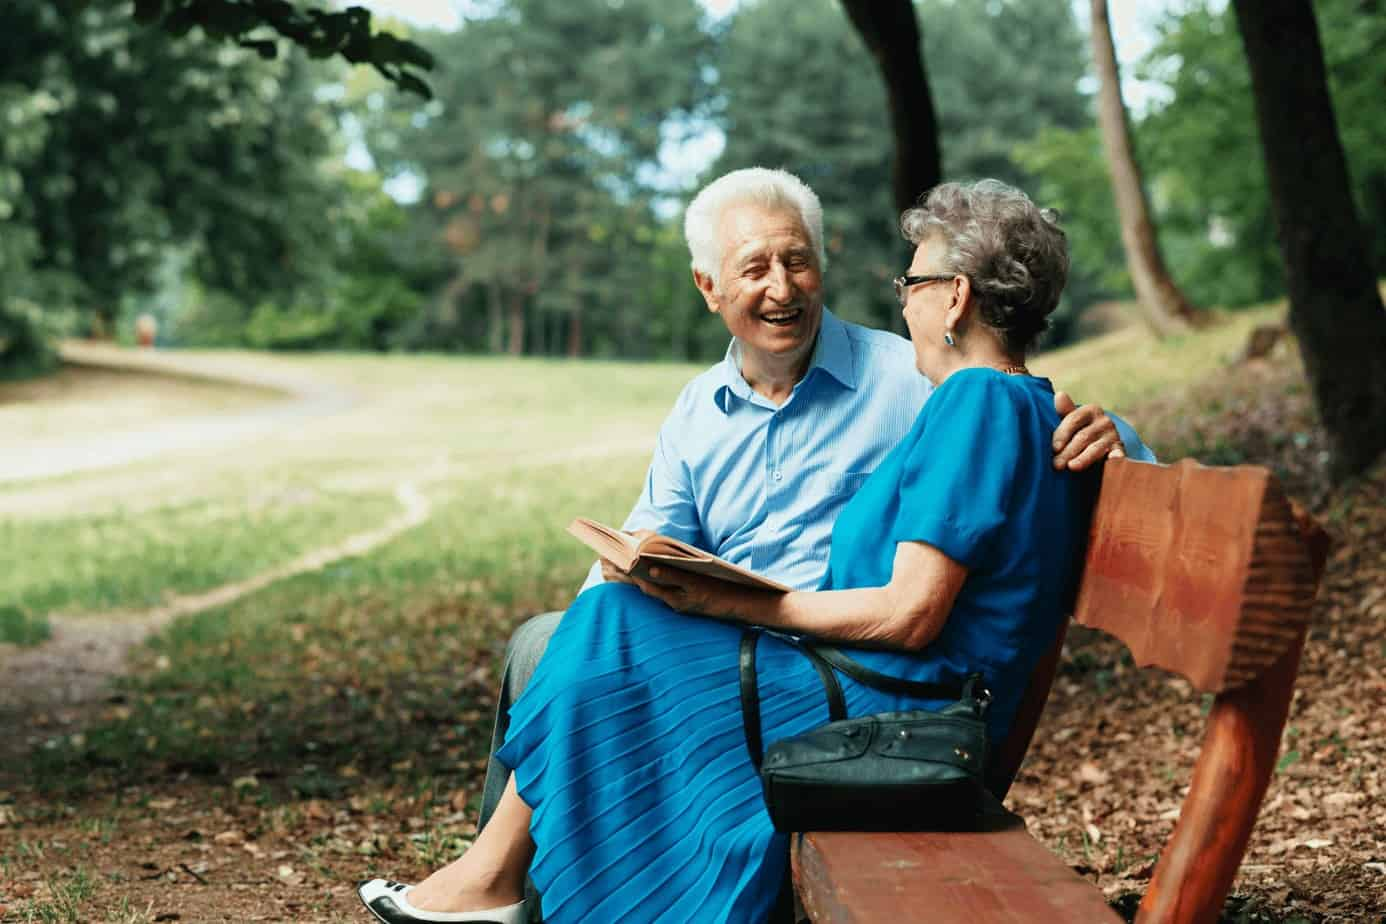 a senior couple sitting on a bench while holding their memory book